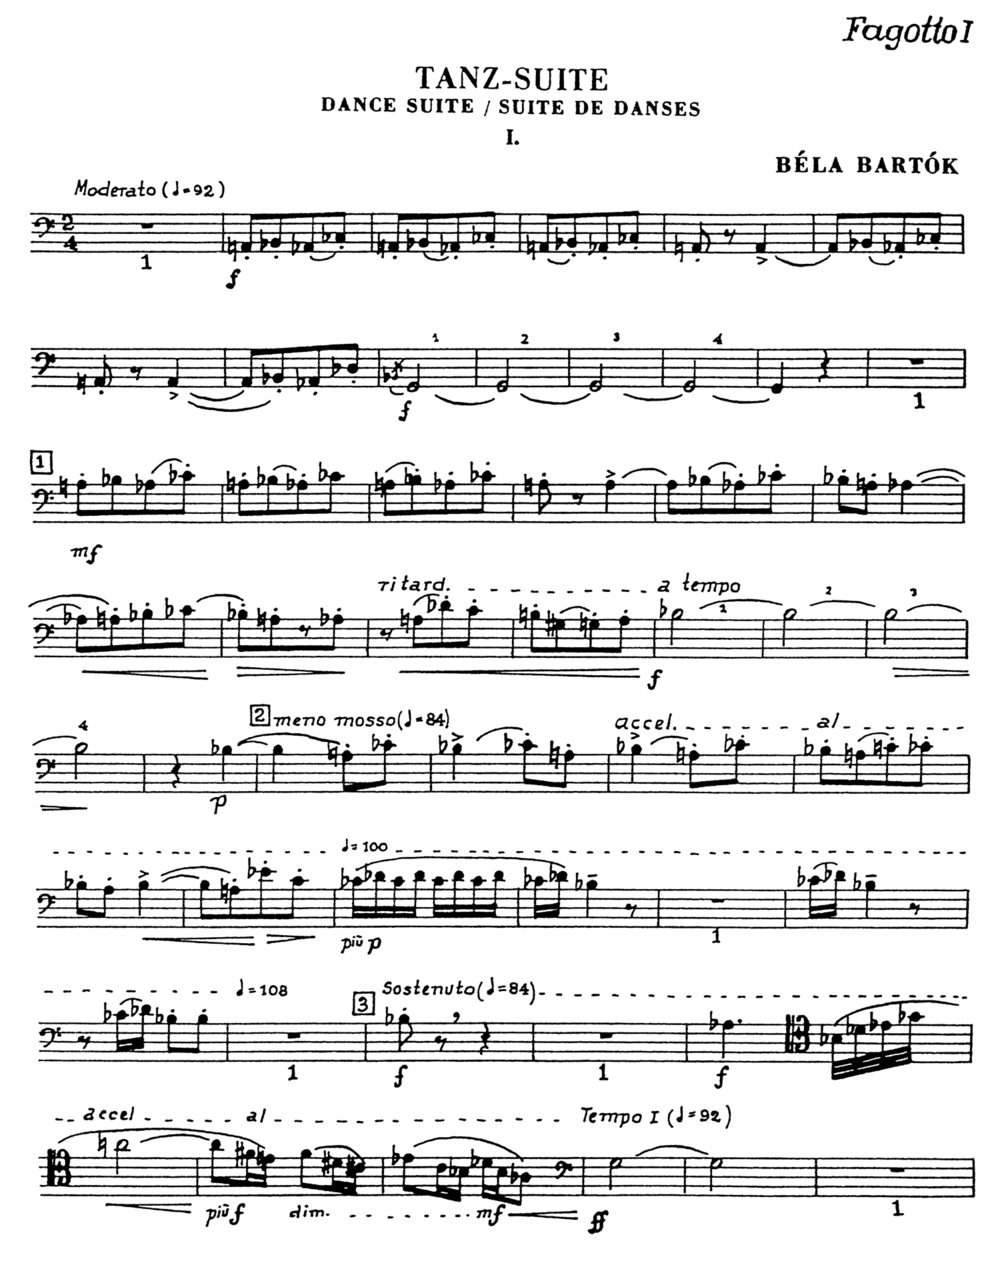 Bartok Dance Suite Part 1.jpg